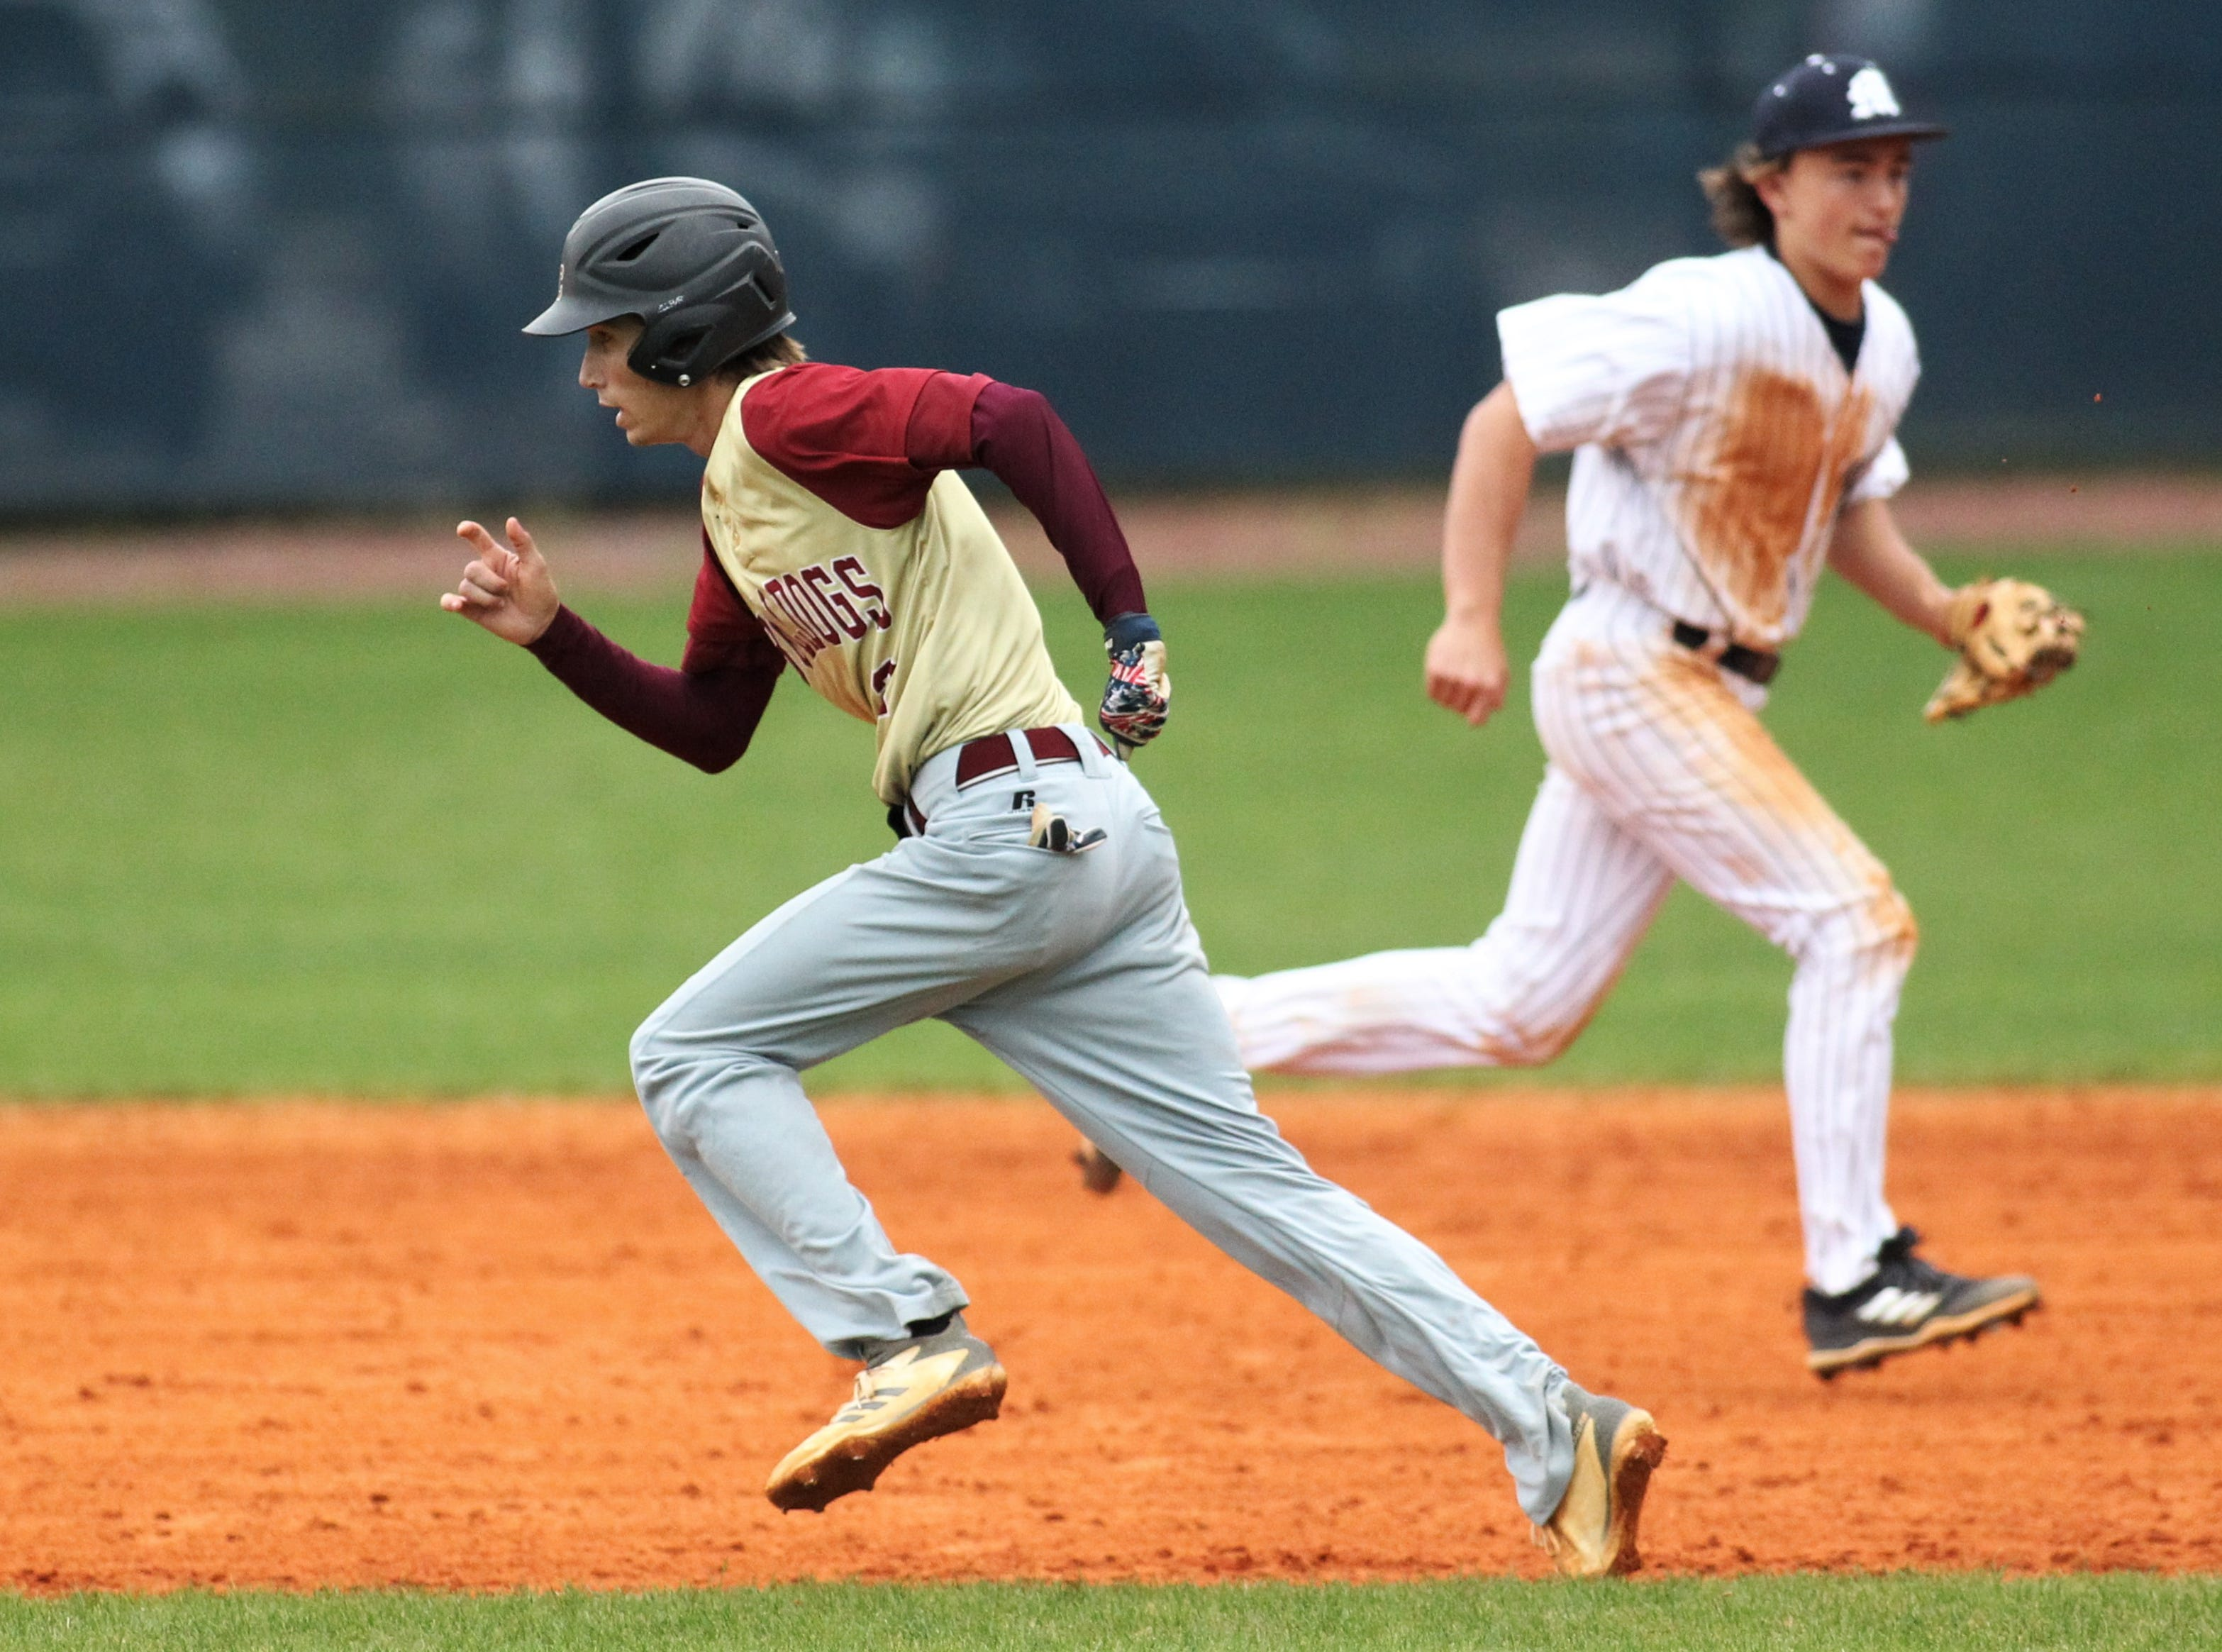 Liberty County's Brent Fant takes off for second as Liberty County's baseball team went on the road to beat Maclay 8-2 on Saturday, March 16, 2019. The Bulldogs played their first game following their head coach Corey Crum's tragic death six days ago.